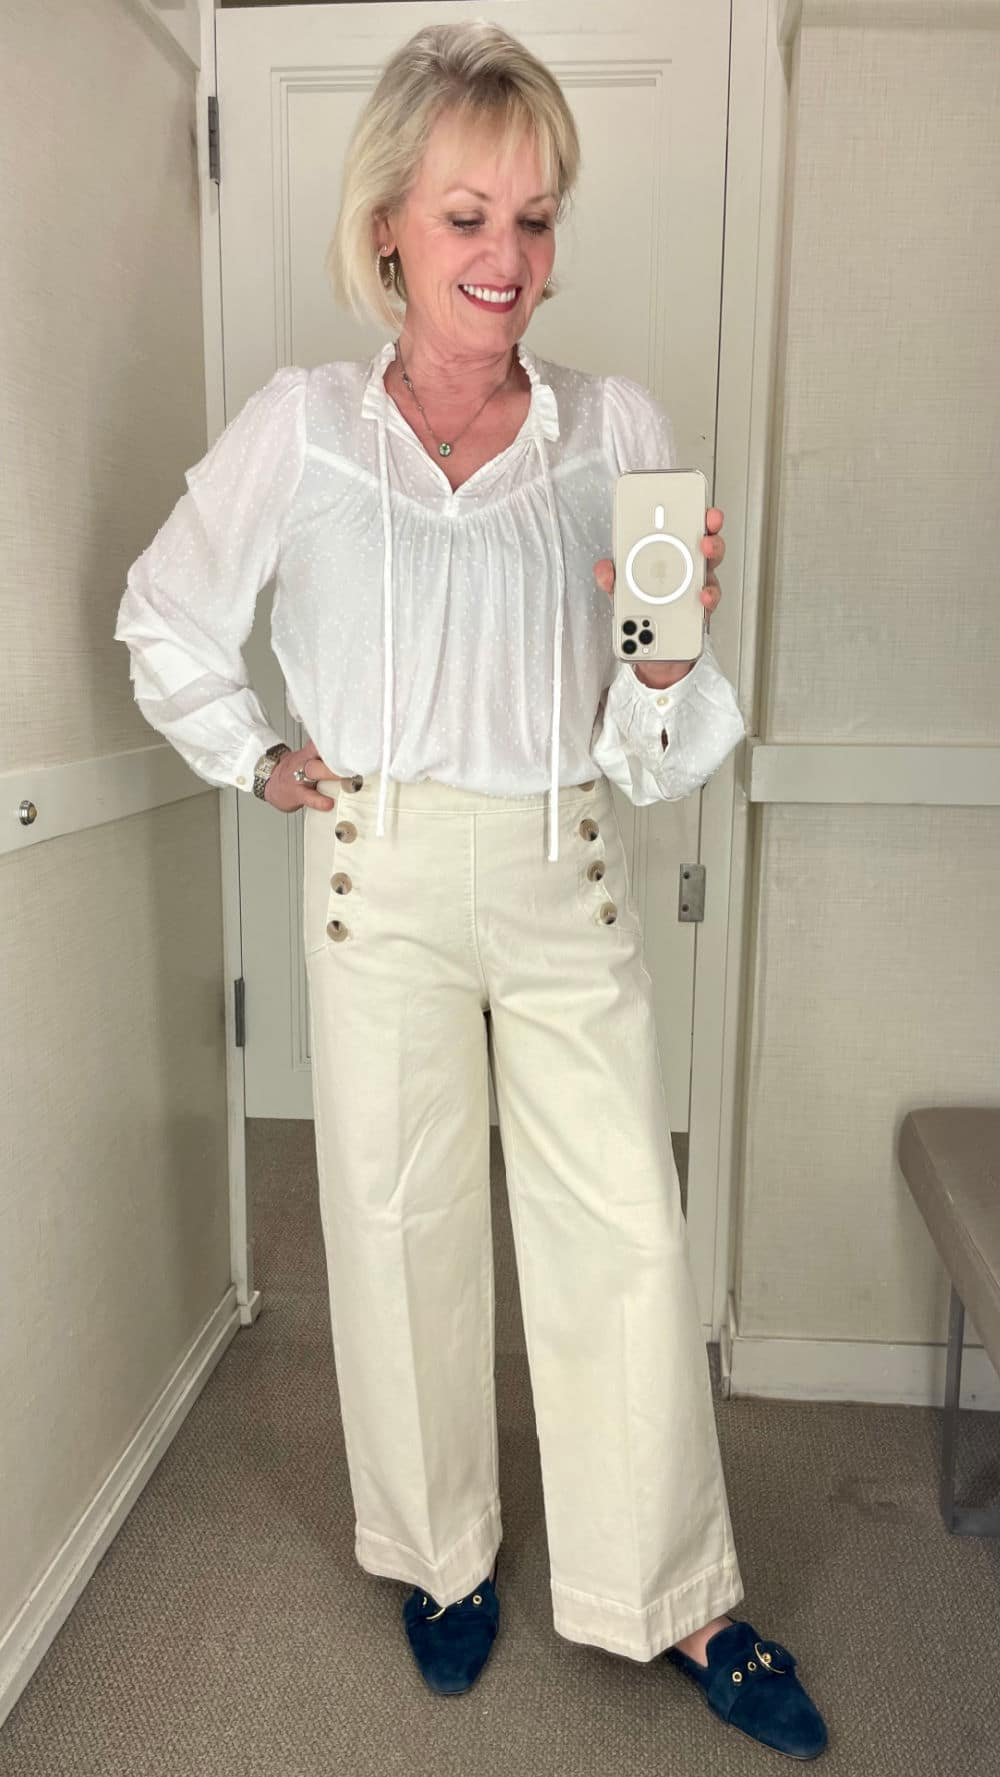 over 50 fashion blogger wearing sailor wide-leg pants and white blouse in dressing room